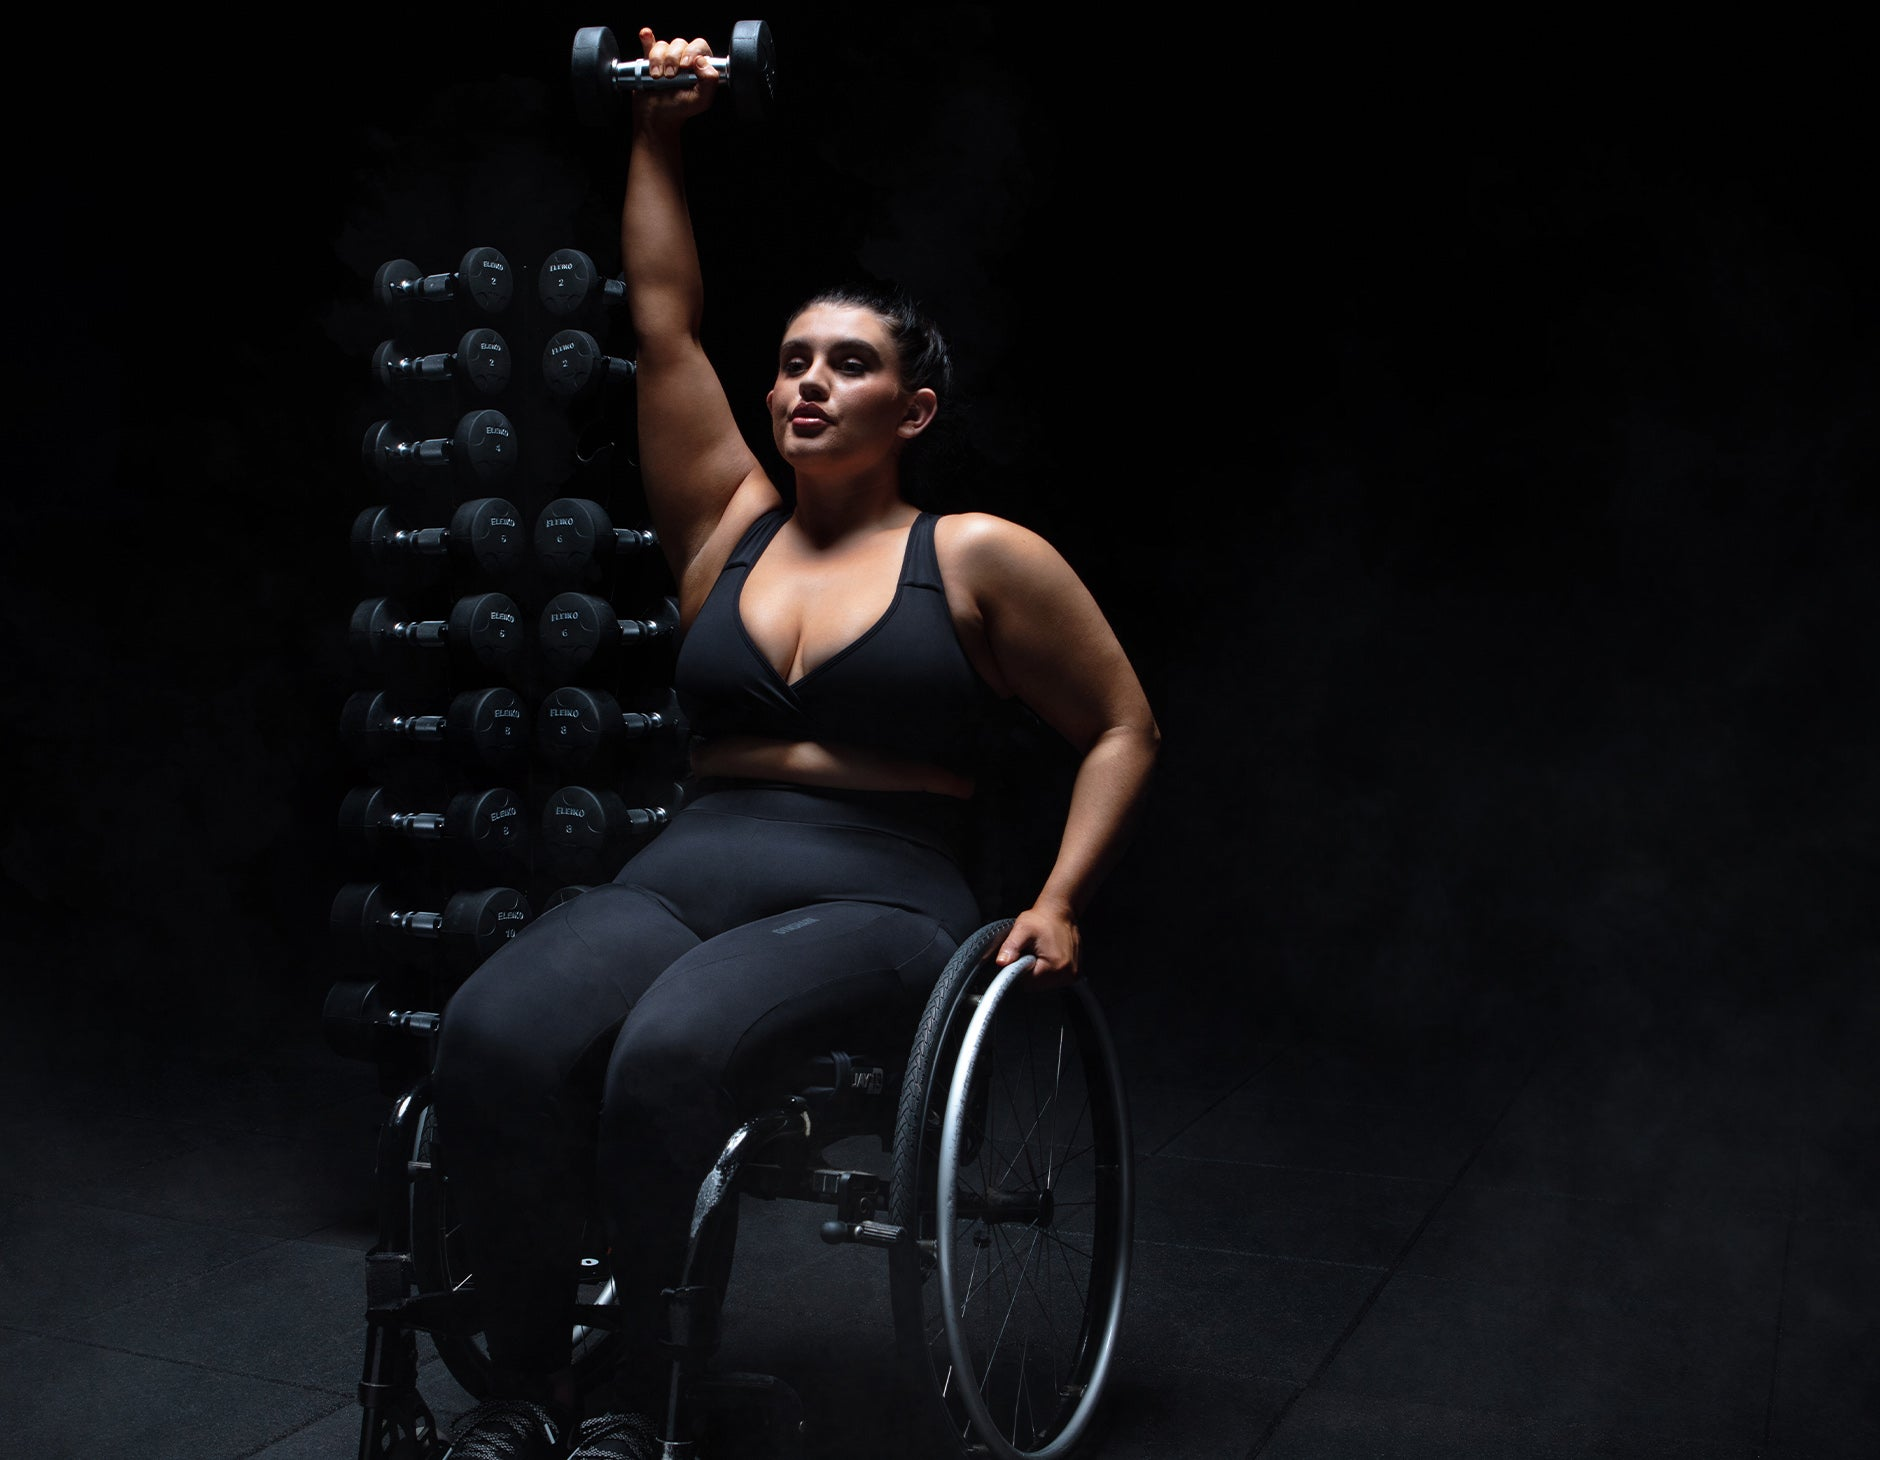 Sophie Butler lifting weights while wearing the Chalk collection in a black room with a spotlight on her.